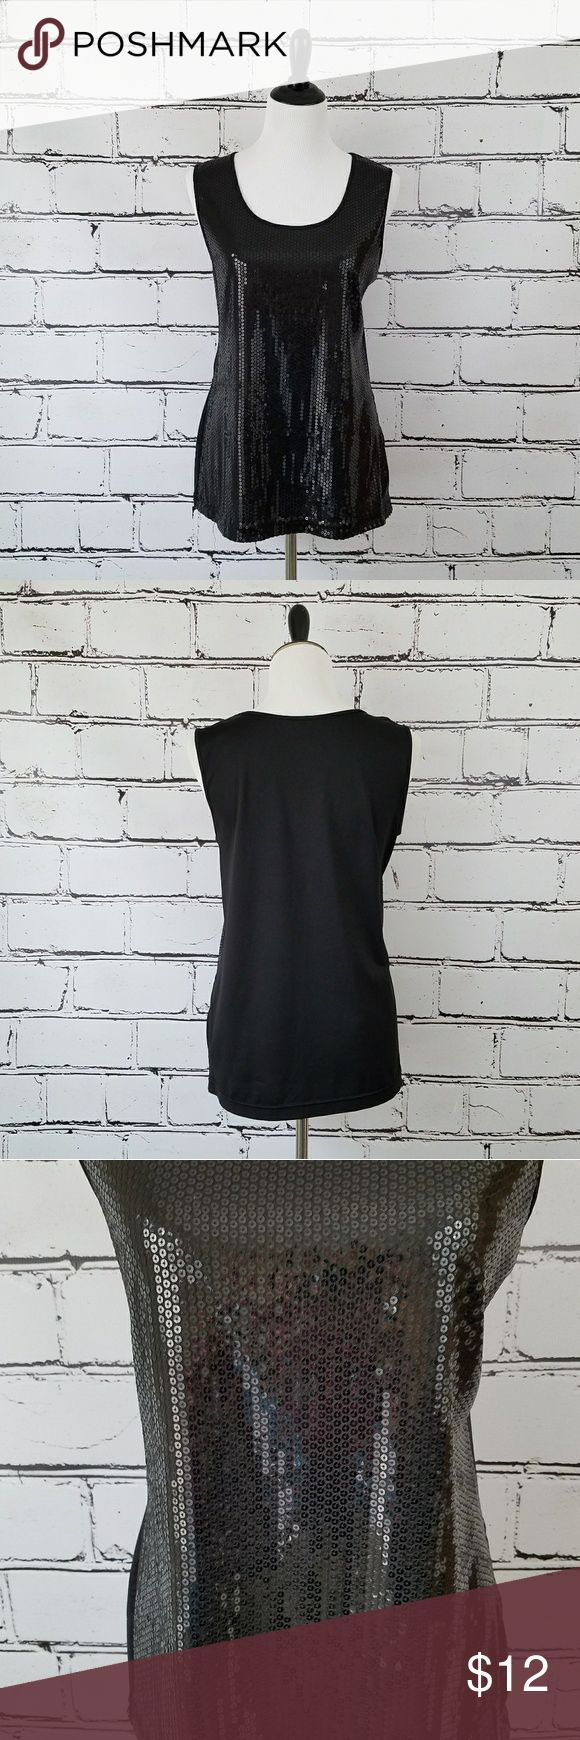 Black Sequin Tank Top! Black tank top with sequins covering the front. Length is about 27 inches and armpit to armpit is about 21 inches. Like new condition - no missing sequins! Notations Tops Tank Tops